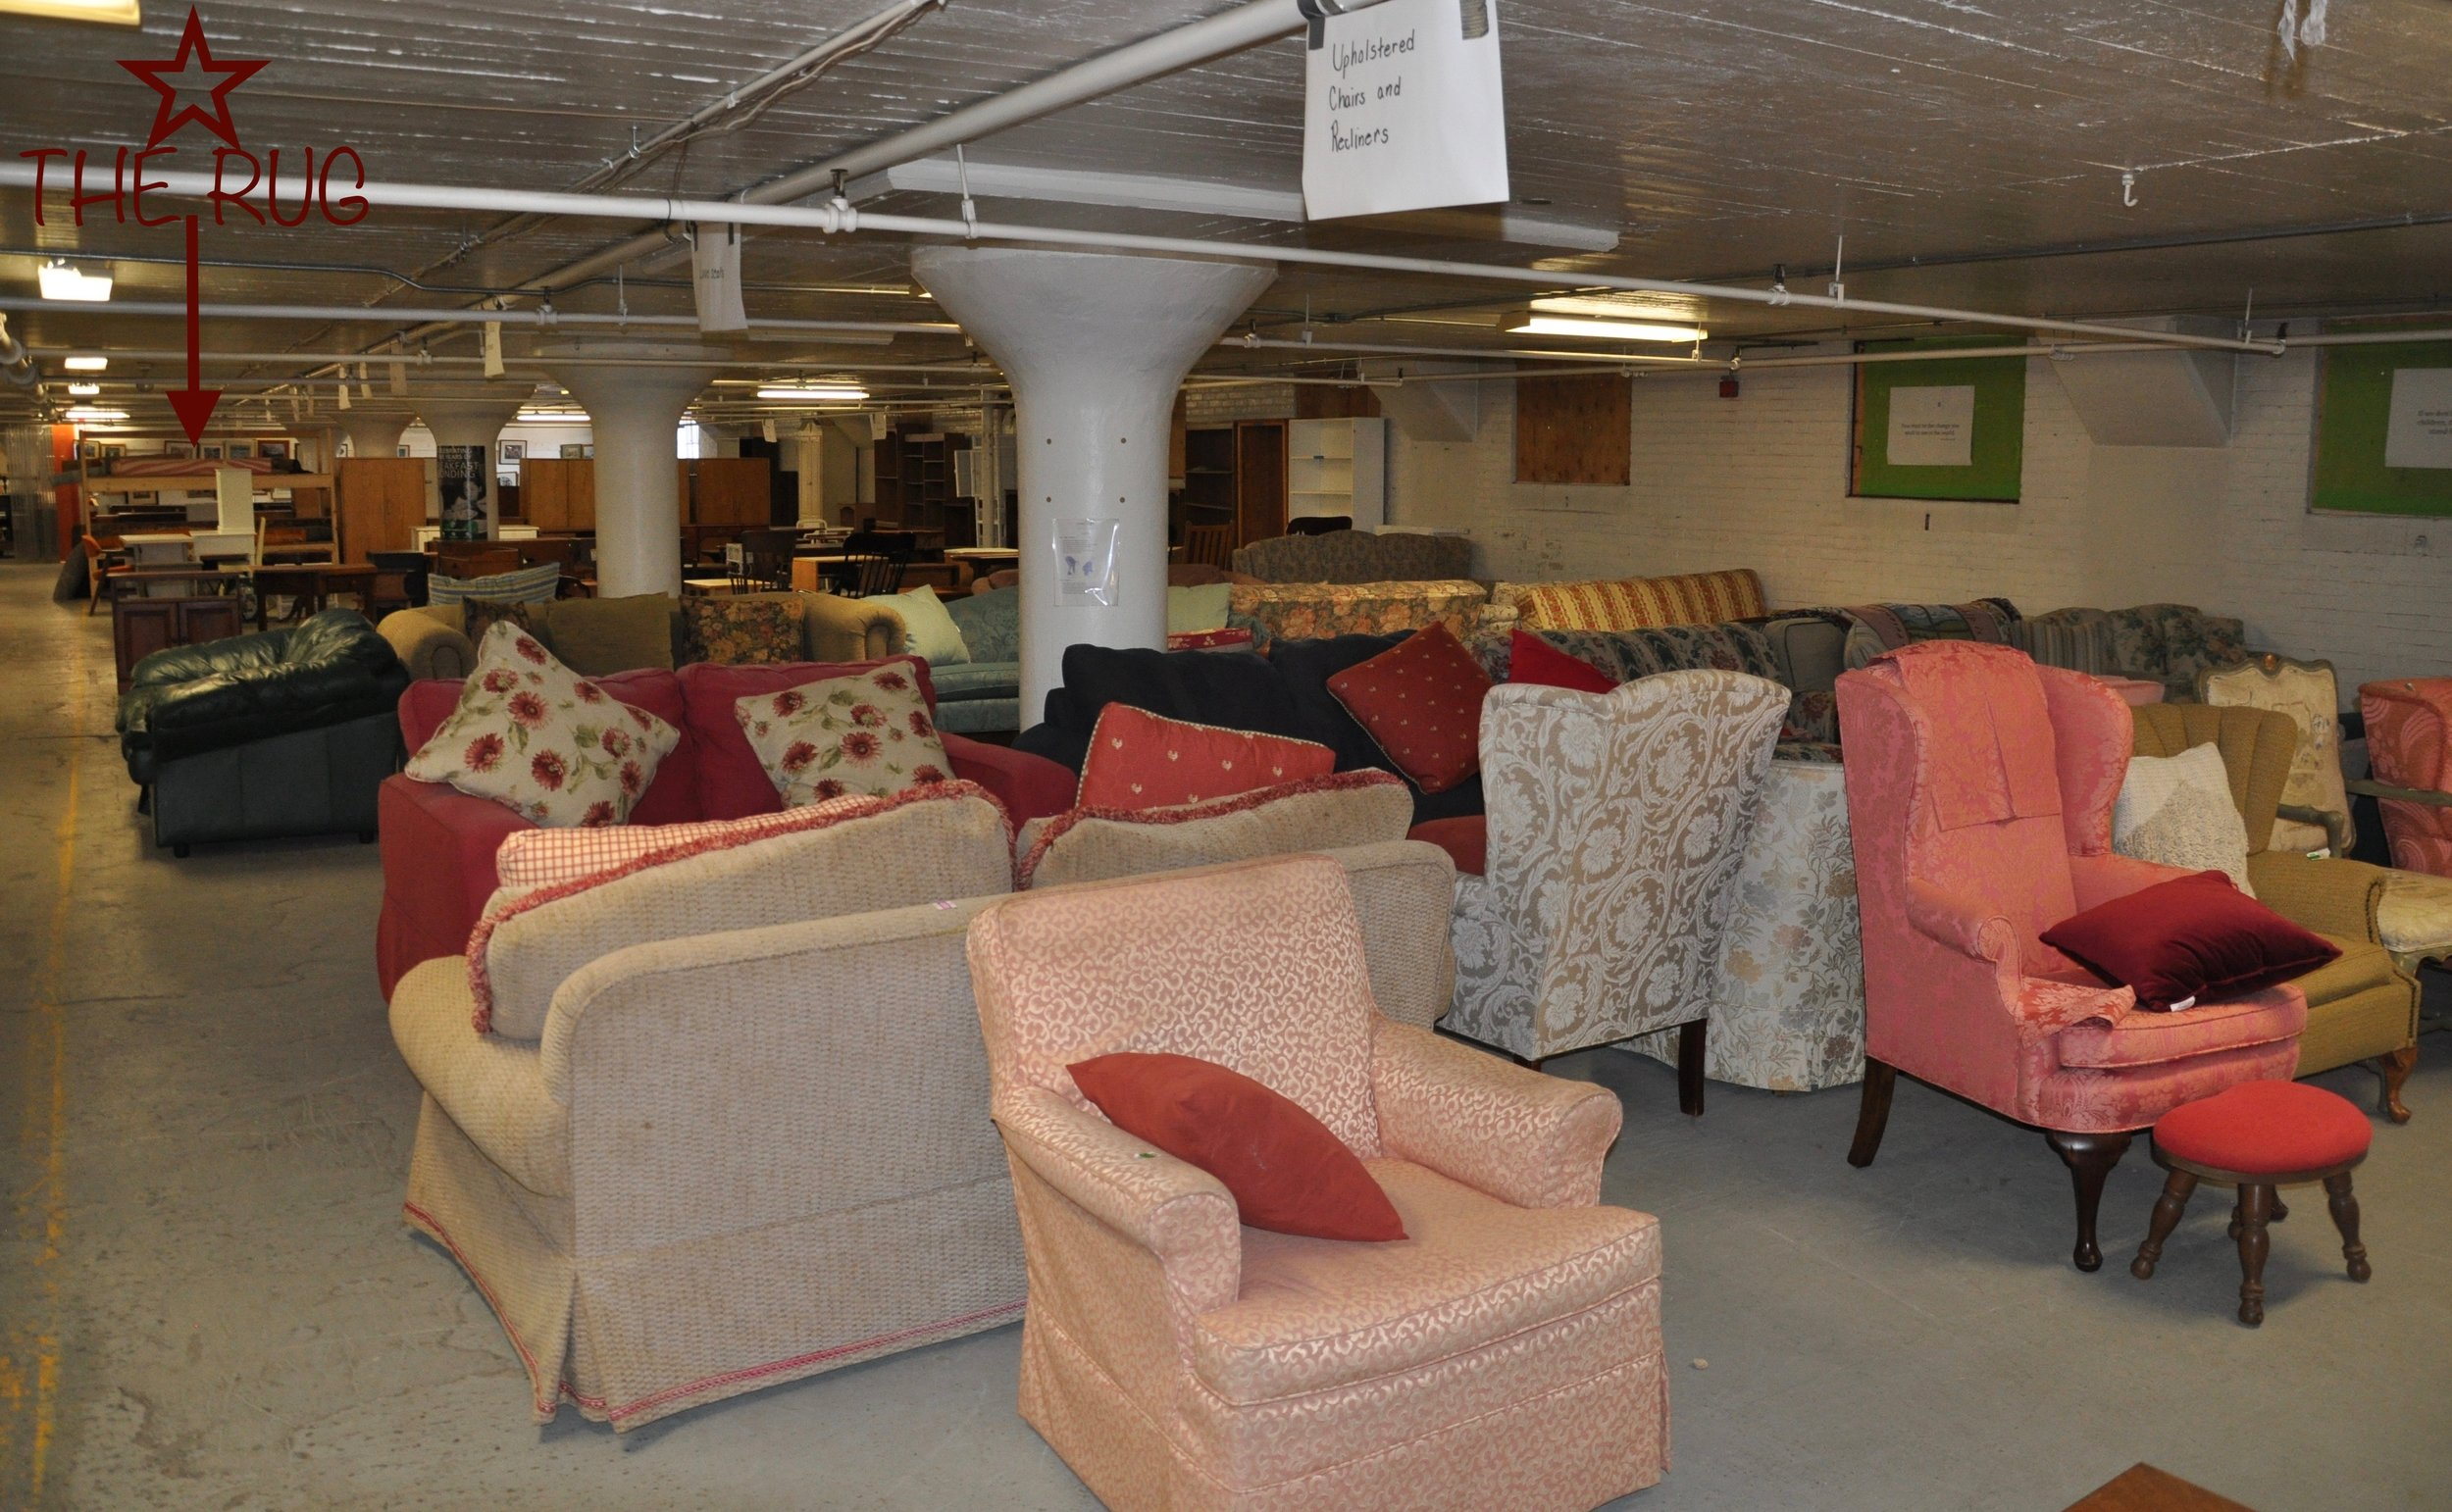 These furniture donations, including the rug mentioned in this story, are given at no cost to families and individuals recovering from homelessness.